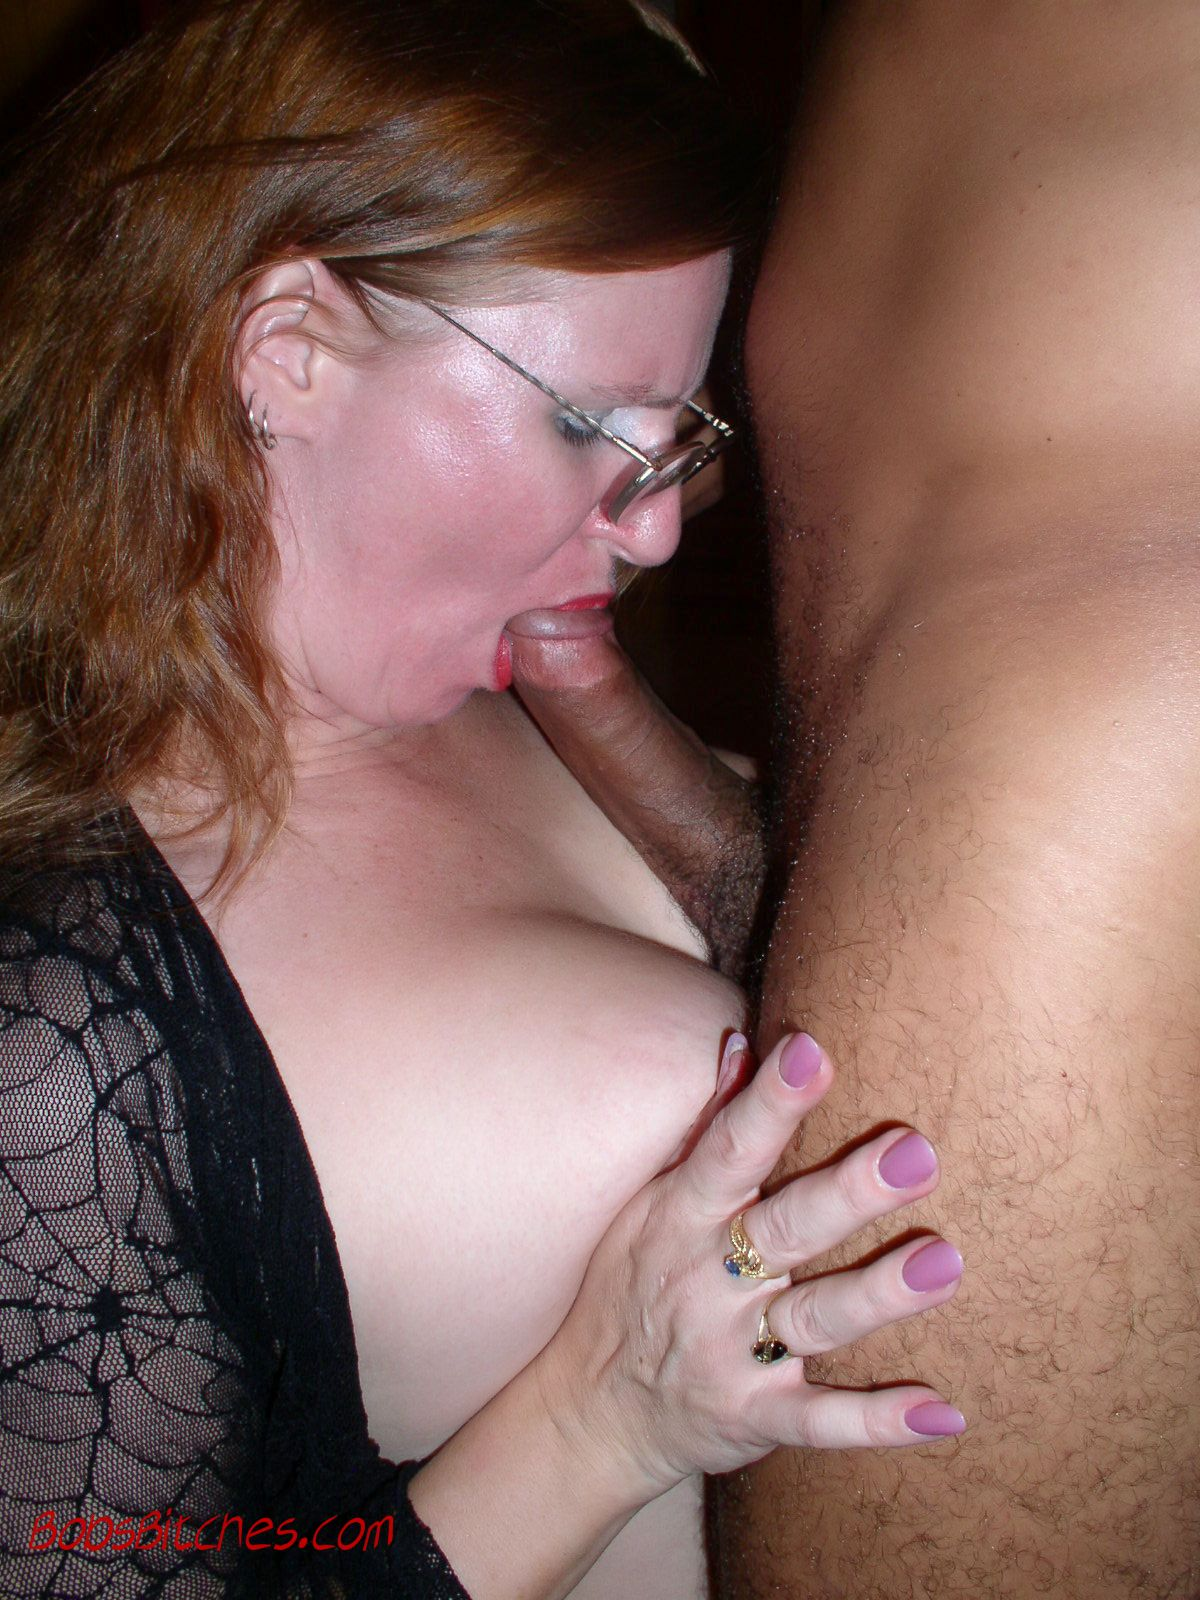 Redhead swinger wife wearing glasses is doing a blow job on a big black cock.